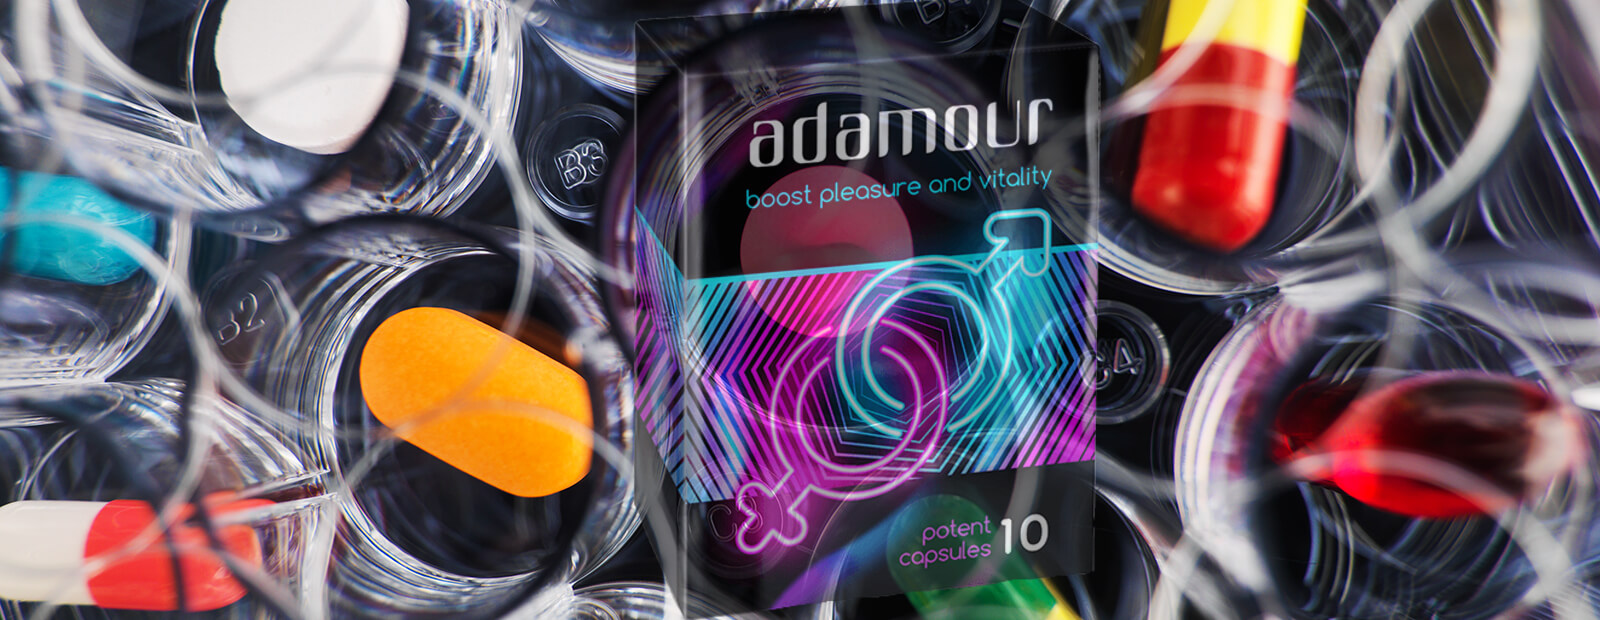 Adamour - forum - site officiel - effets